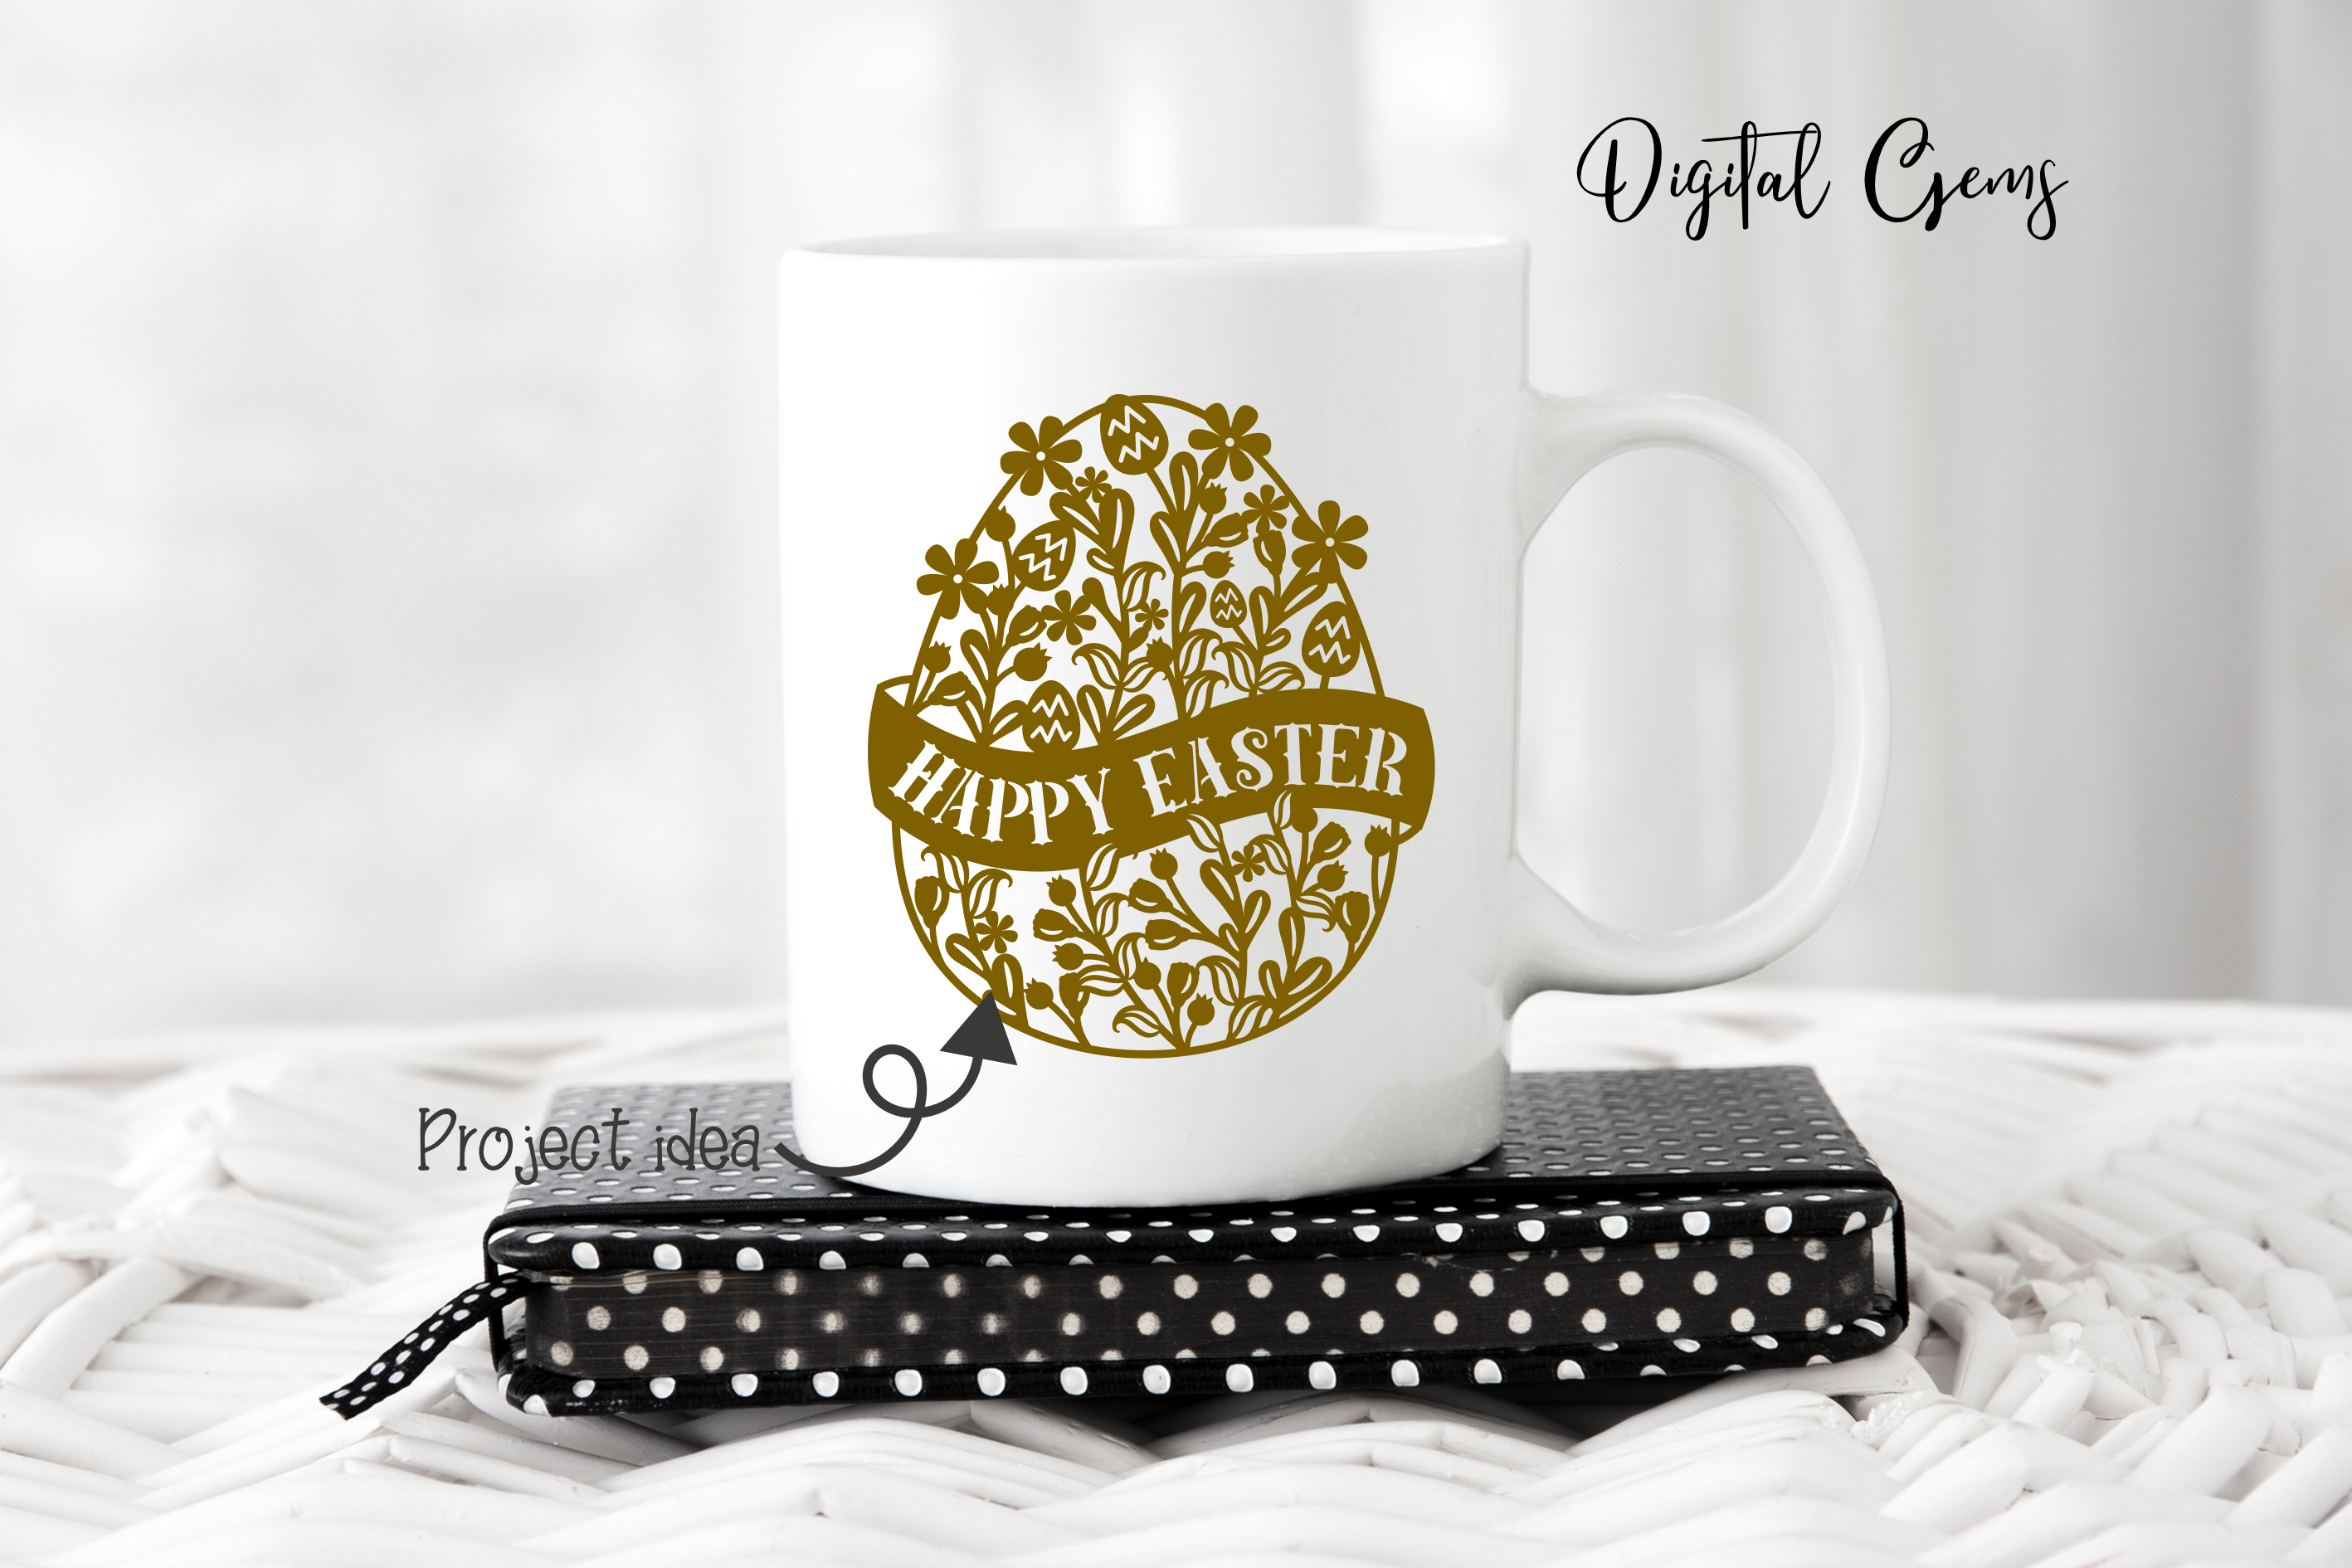 Happy Easter, Egg paper cut SVG / DXF / EPS / PNG files example image 6